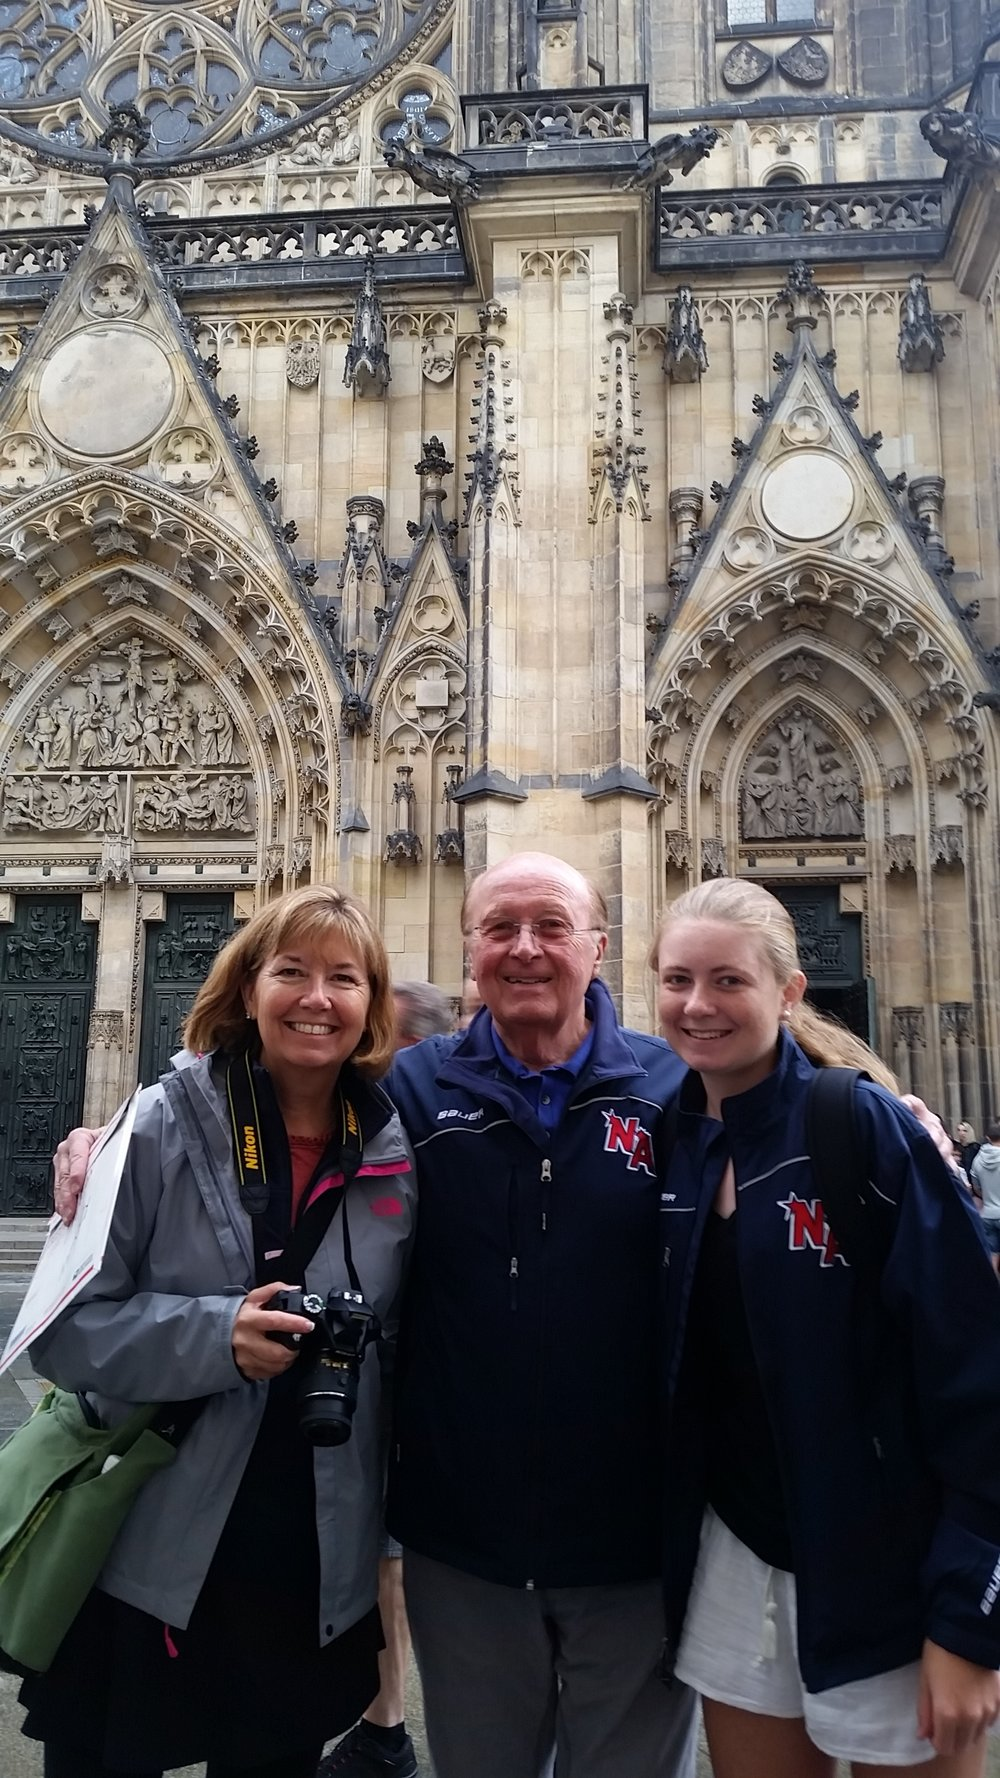 Karen and Megan Powers at St. Vitus Cathedral